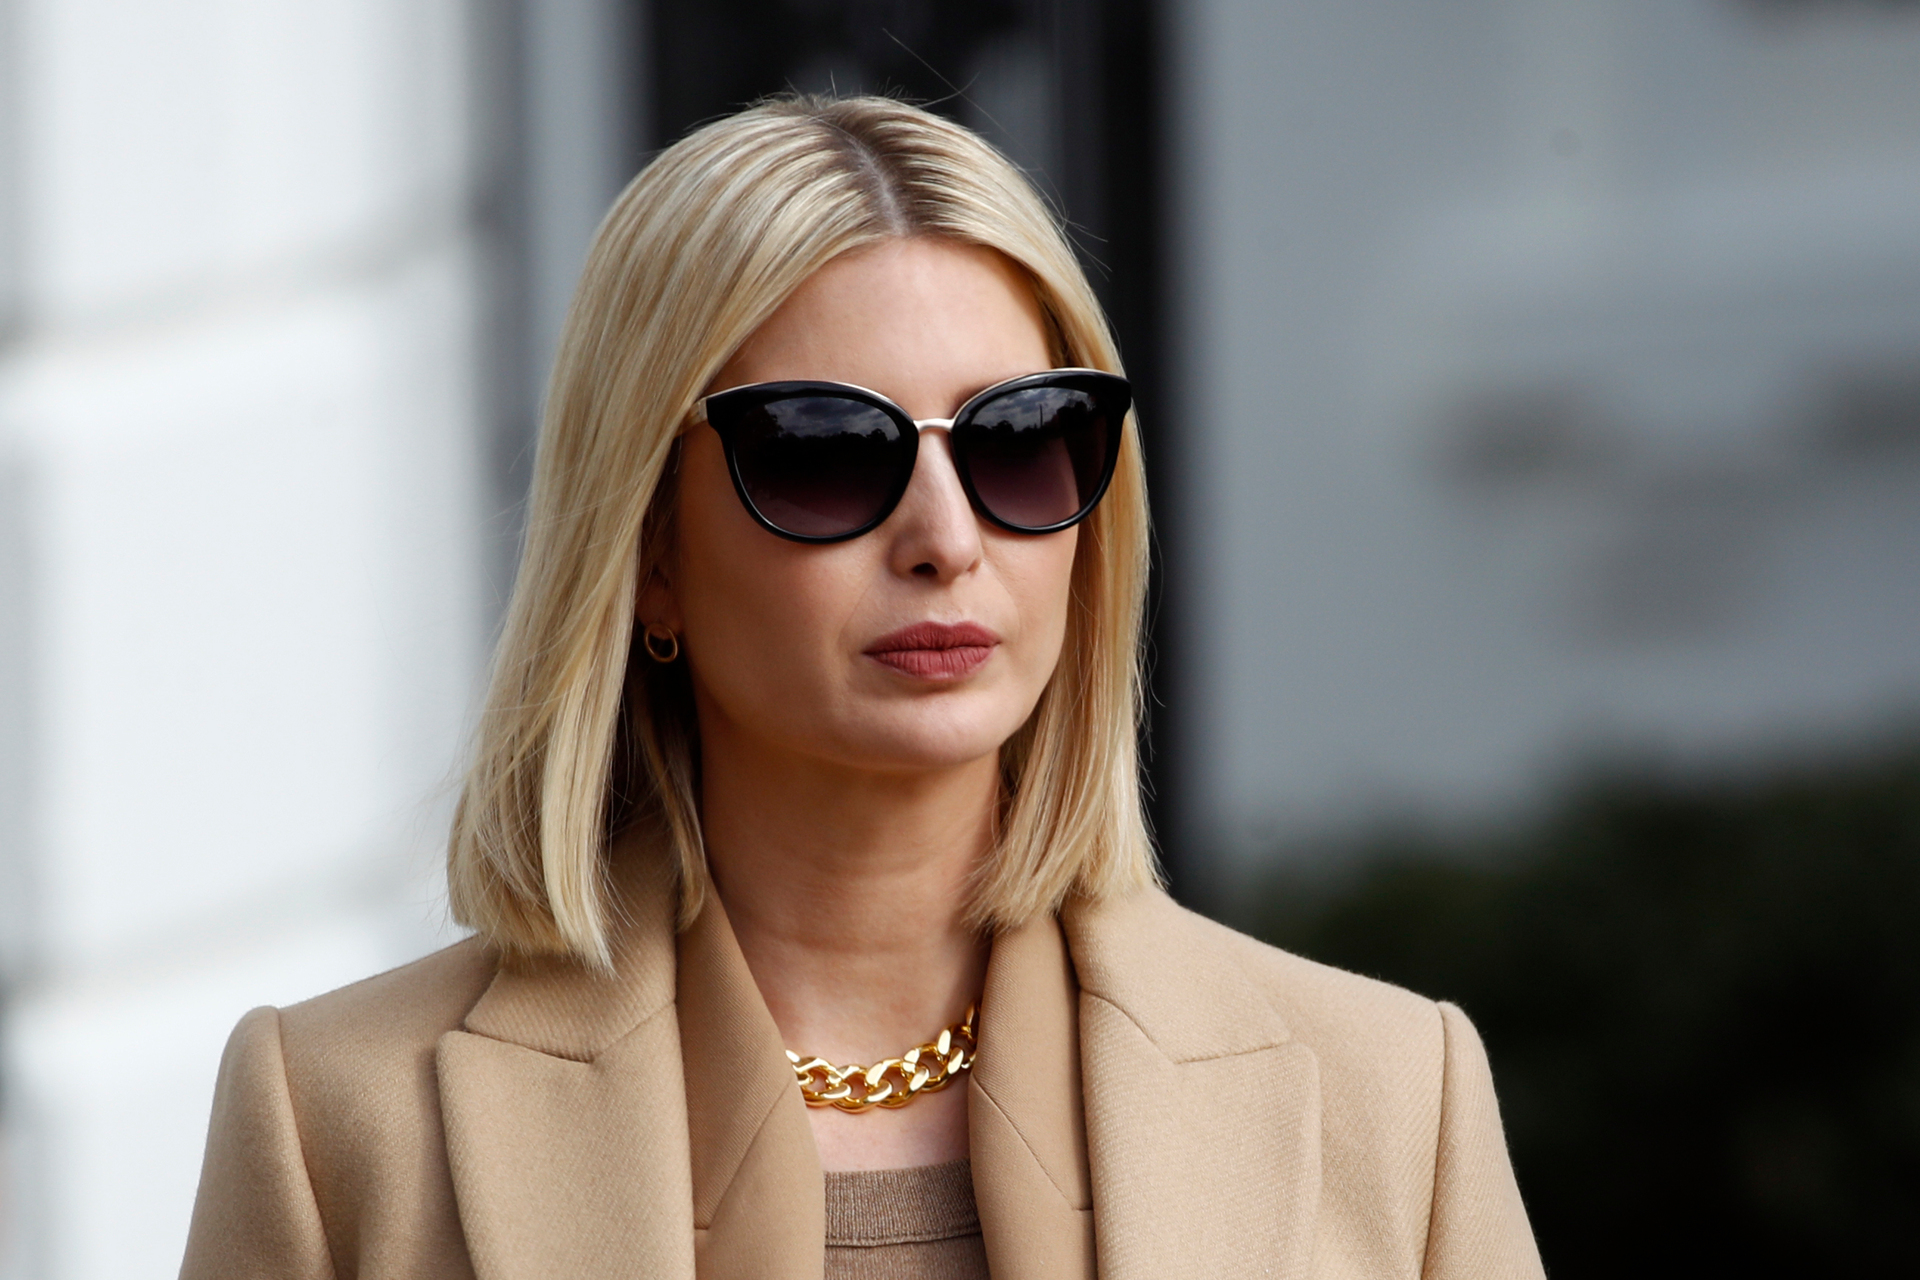 Ivanka twist in case of Trump's Russia links and 'golden showers' dossier